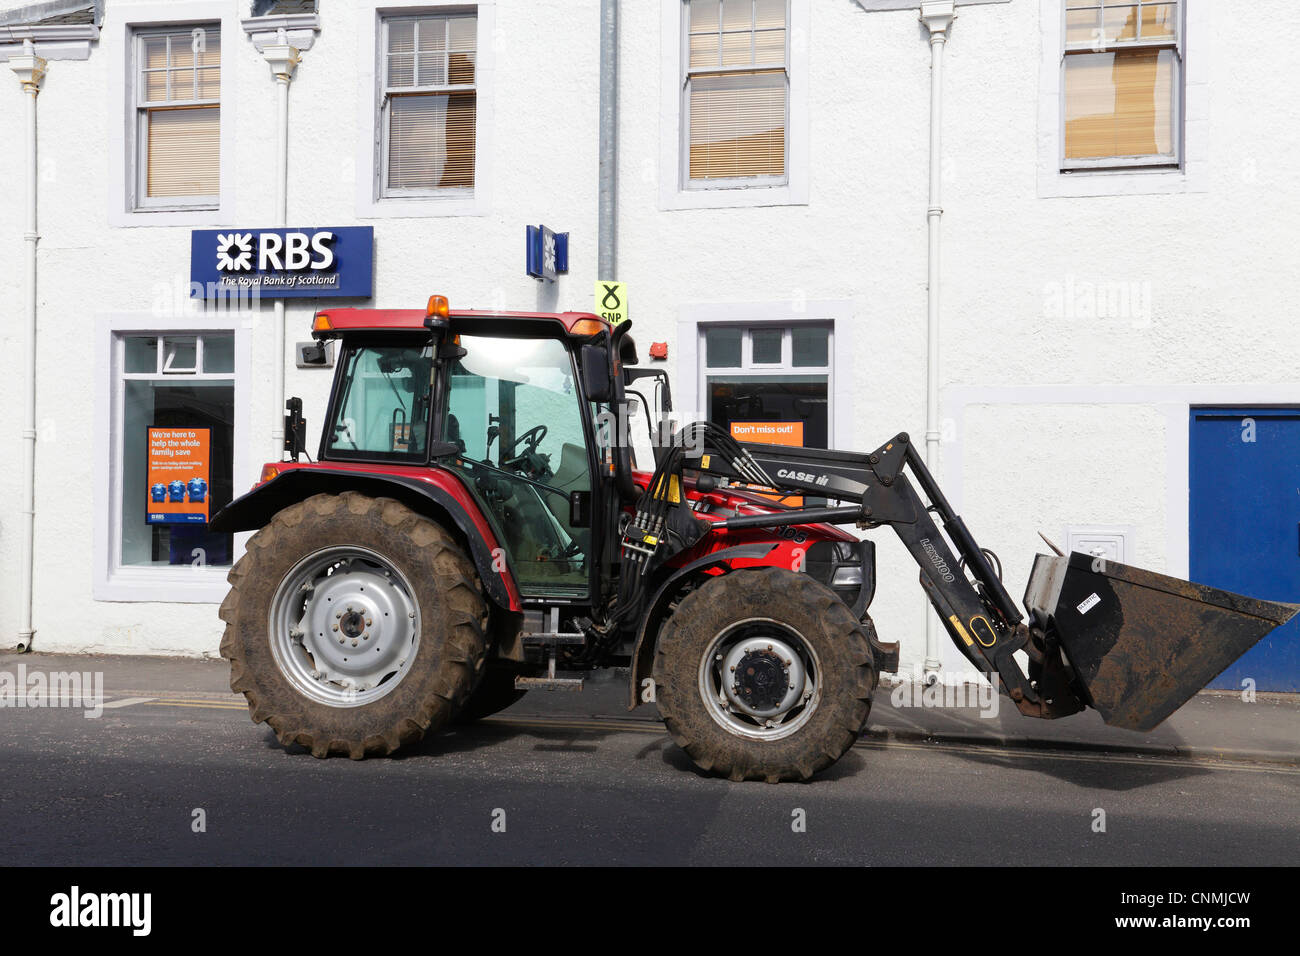 Tractor parked outside a Royal Bank of Scotland branch, UK. Branch now closed - Stock Image